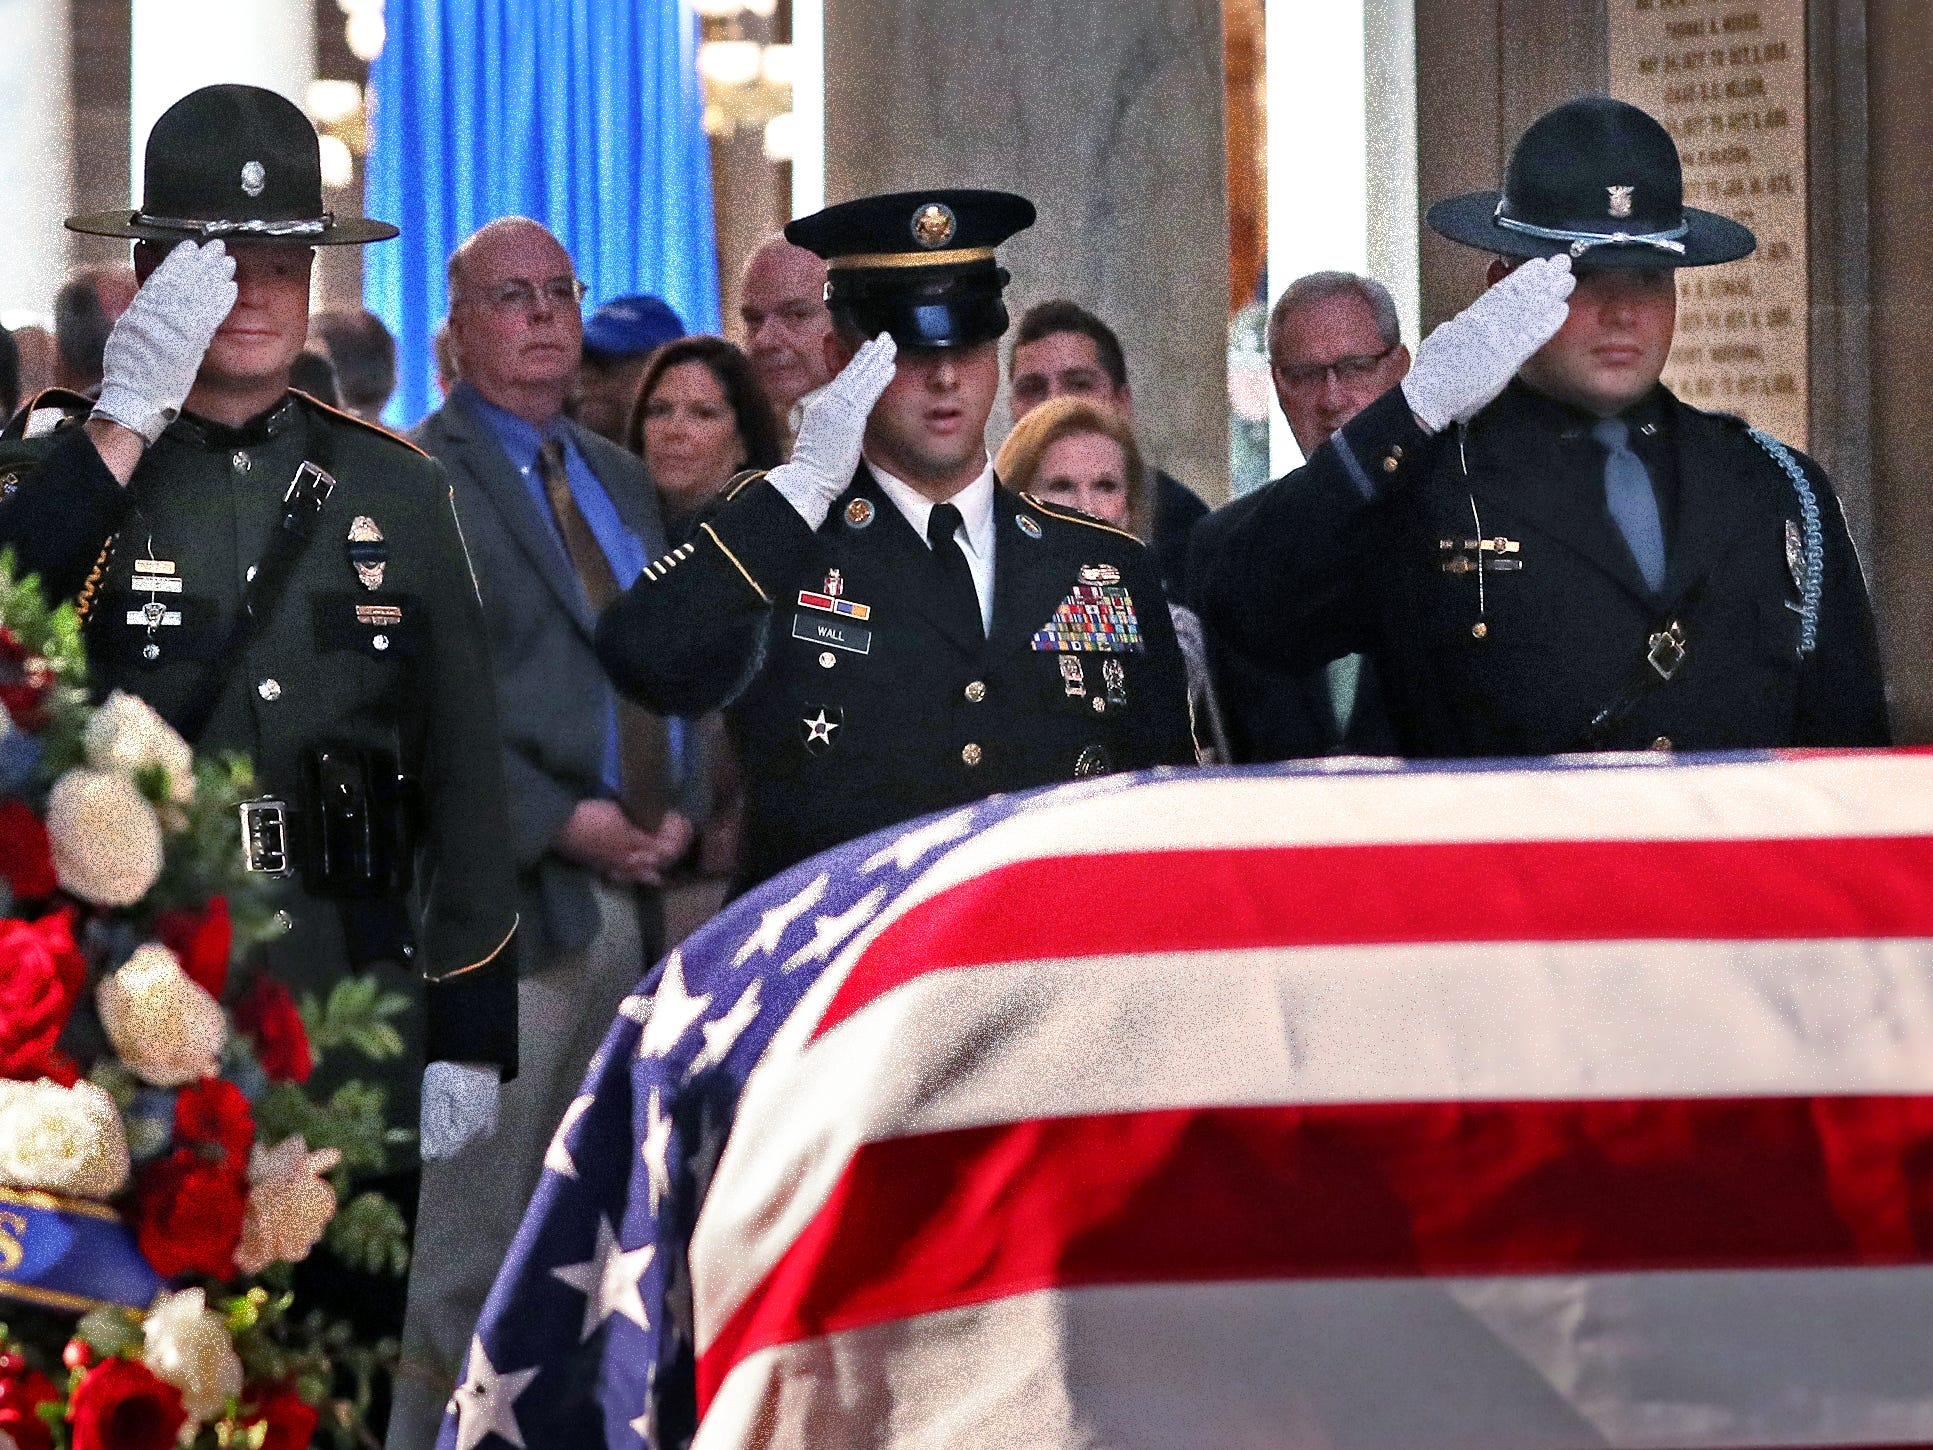 Standing honors are given as former Senator and Mayor Richard Lugar lies in state under the Statehouse rotunda, Tuesday, May 14, 2019.